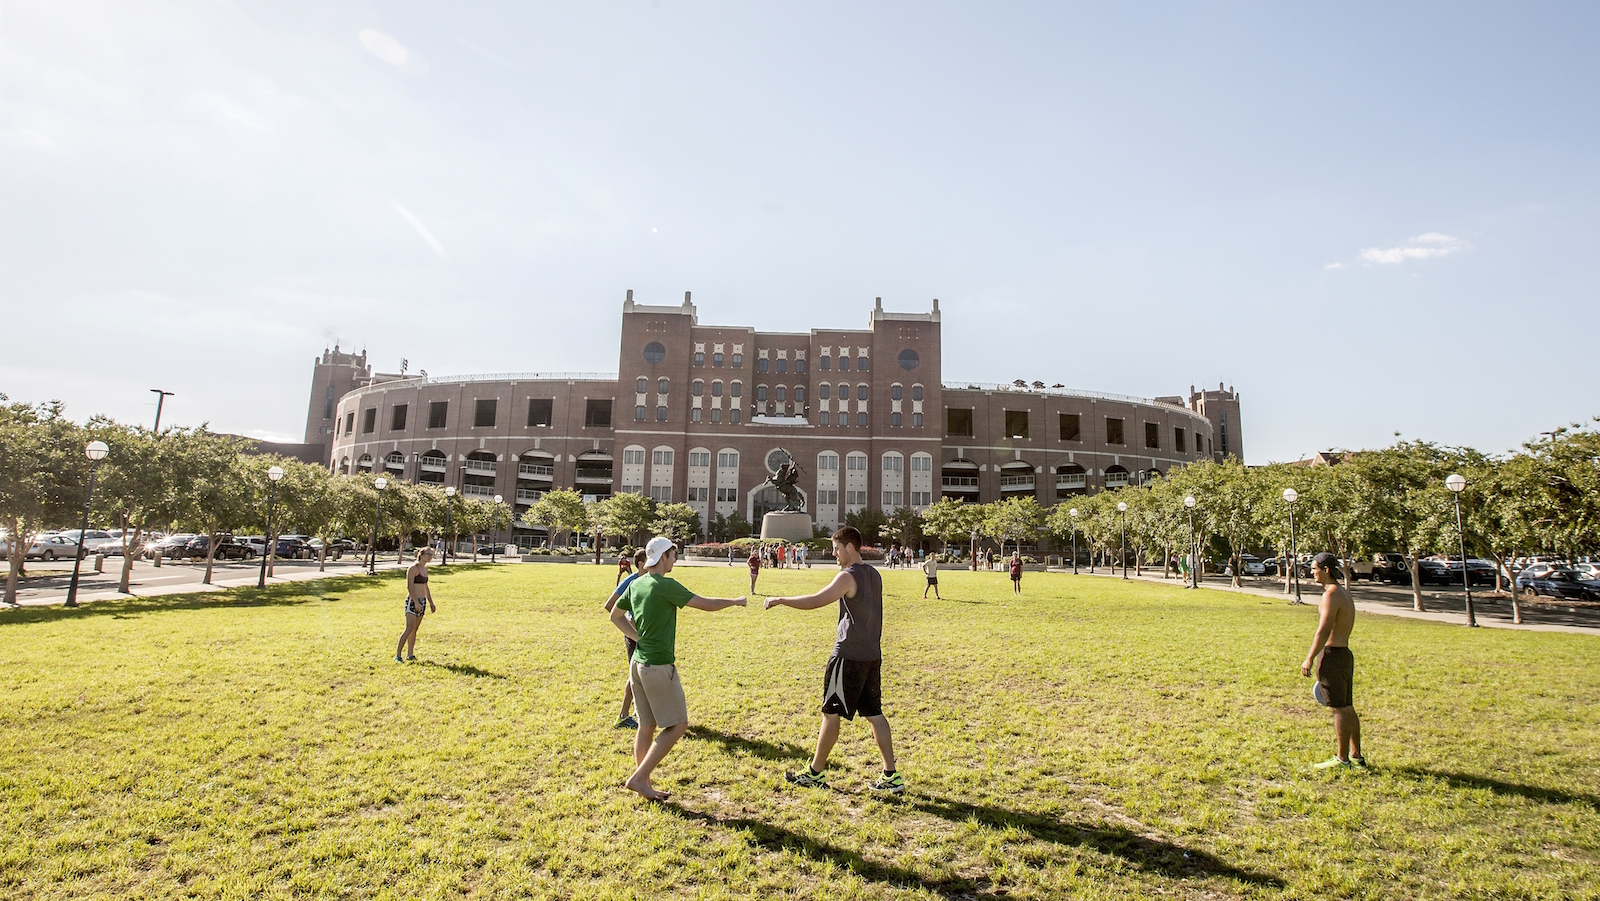 Florida State University students play disk football on Langford Green in front of Doak S. Campbell Stadium on the campus of Florida State University in Tallahassee, Fla., Friday April 30, 2015. (AP Photo/Mark Wallheiser)